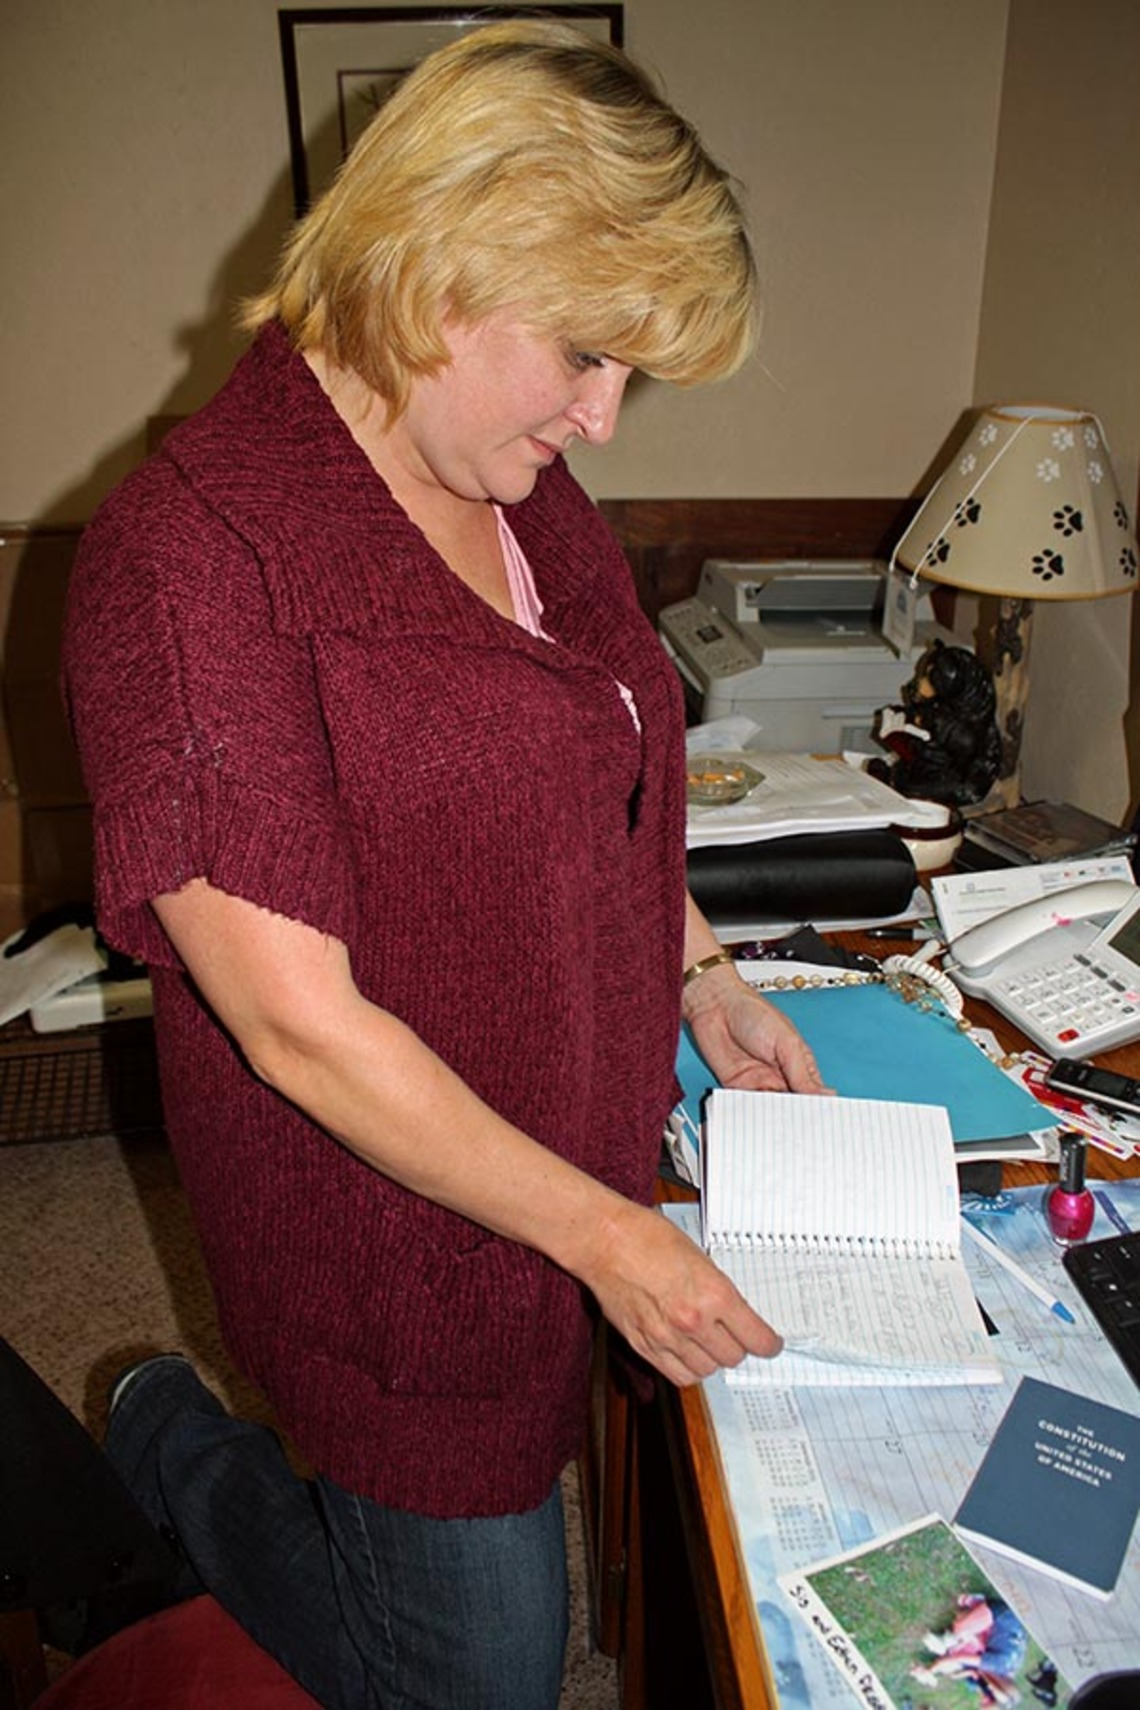 In June, Kathy Smith was named by West Virginia Governor Earl Ray Tomblin to a task force that will help the state to reduce juvenile confinement.